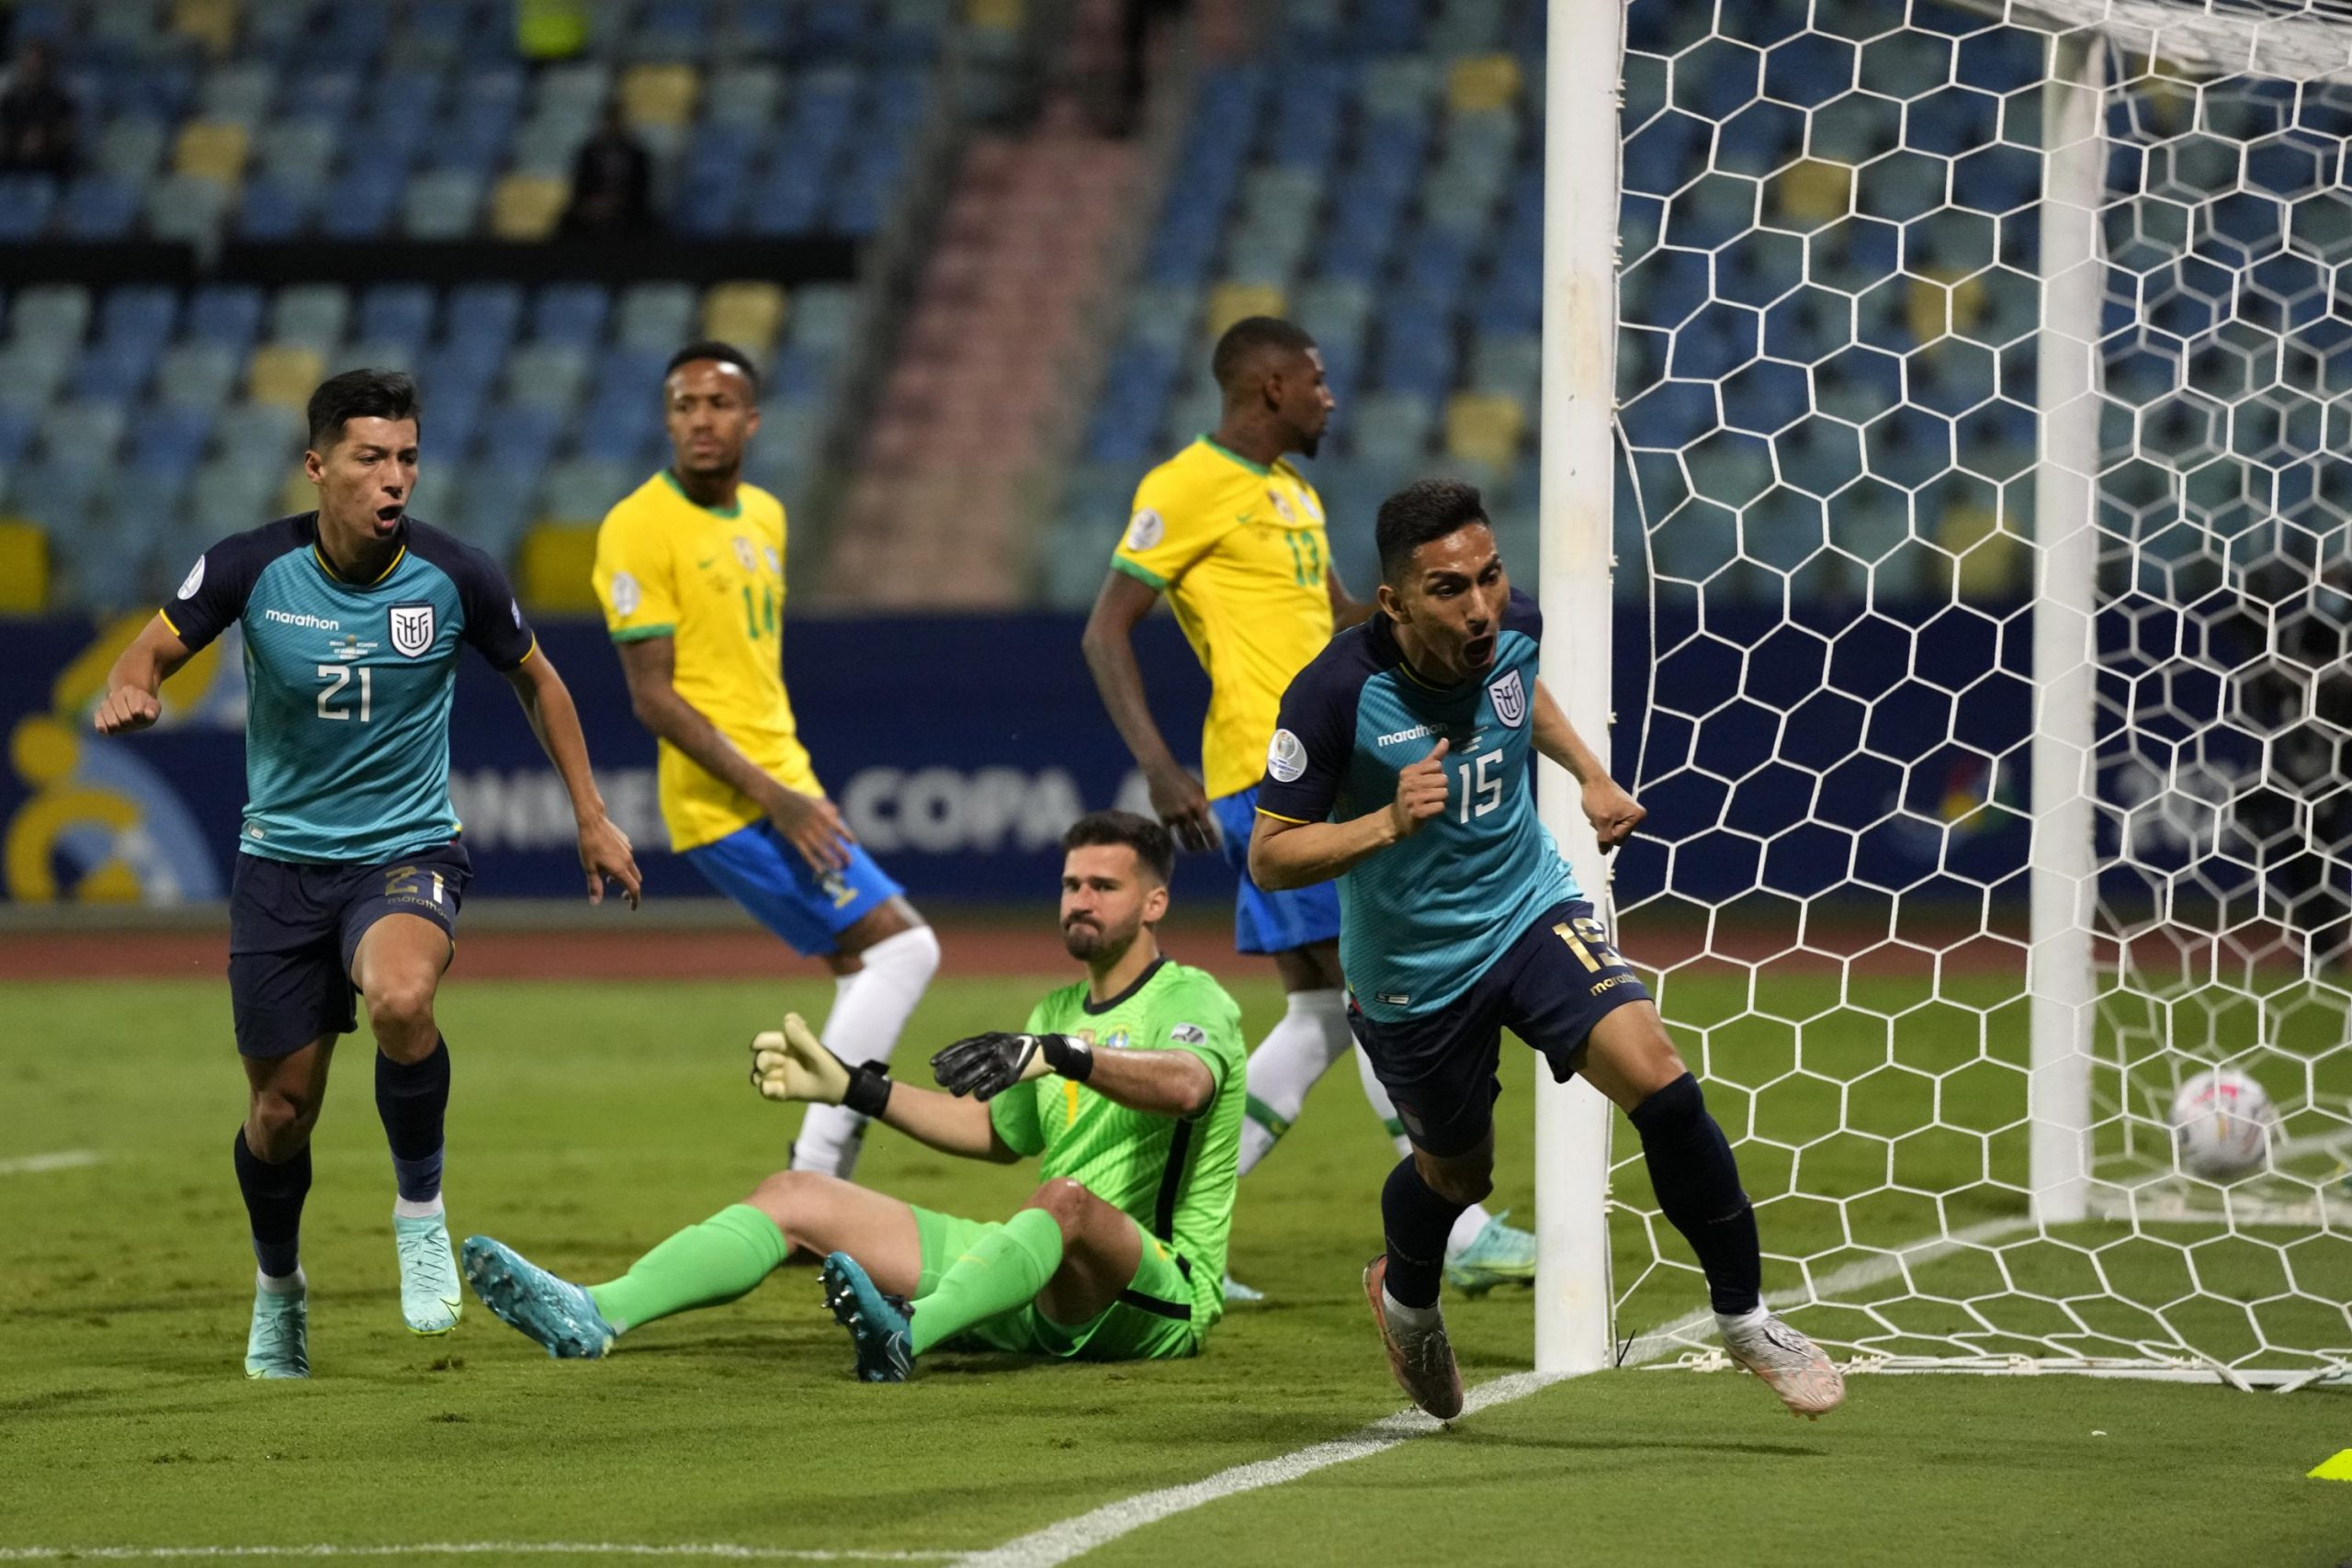 Ecuador qualifies to the Copa America quarterfinals after a 1-1 tie with Brazil.